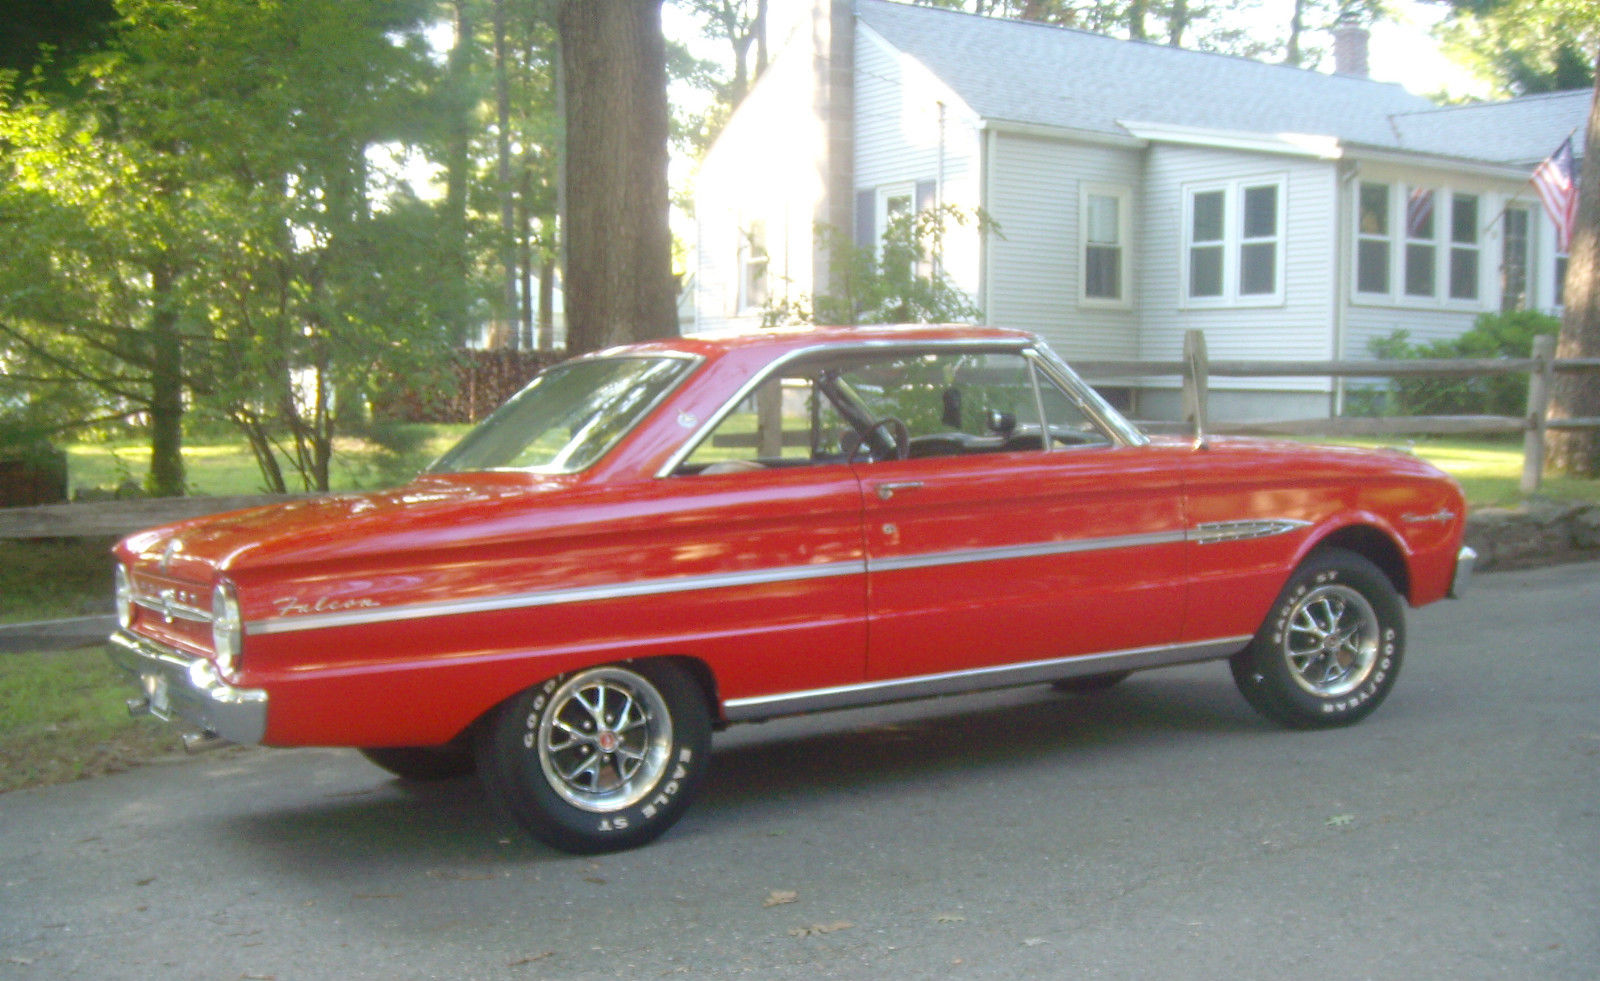 1963 Ford Falcon Sprint For Sale on 1963 12 ford falcon sprint